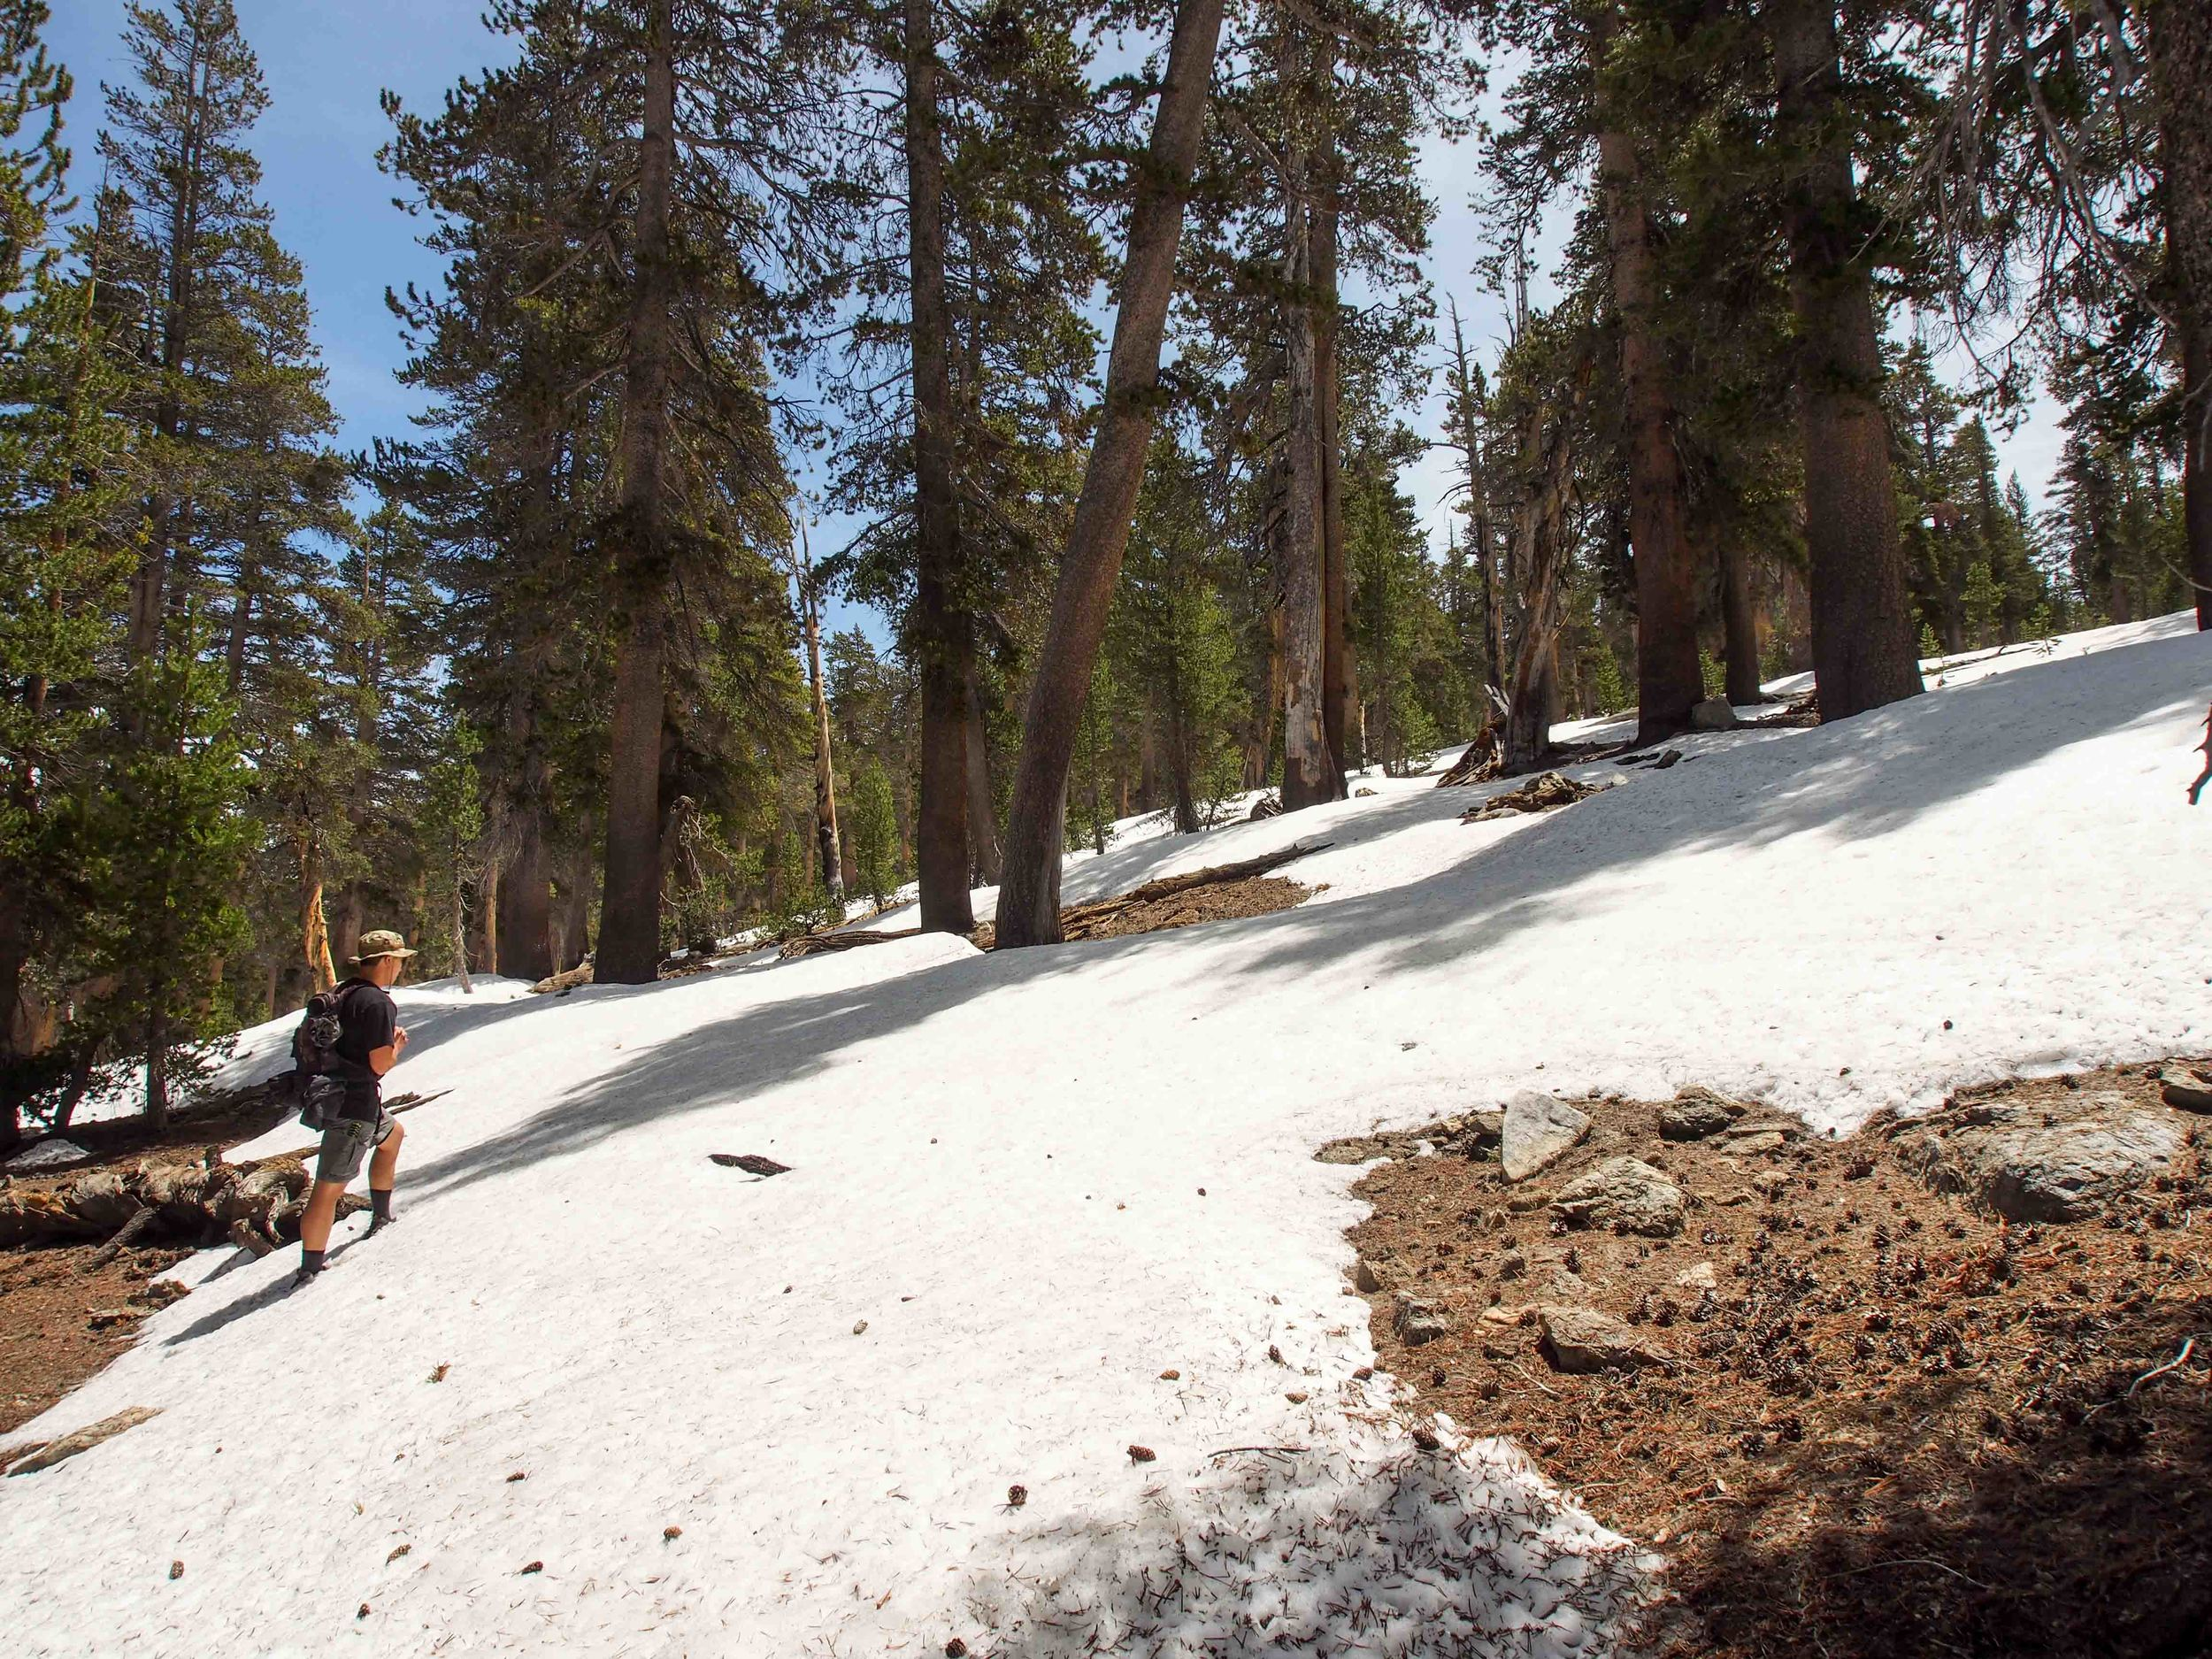 As we climbed, the snow patches covered more ground